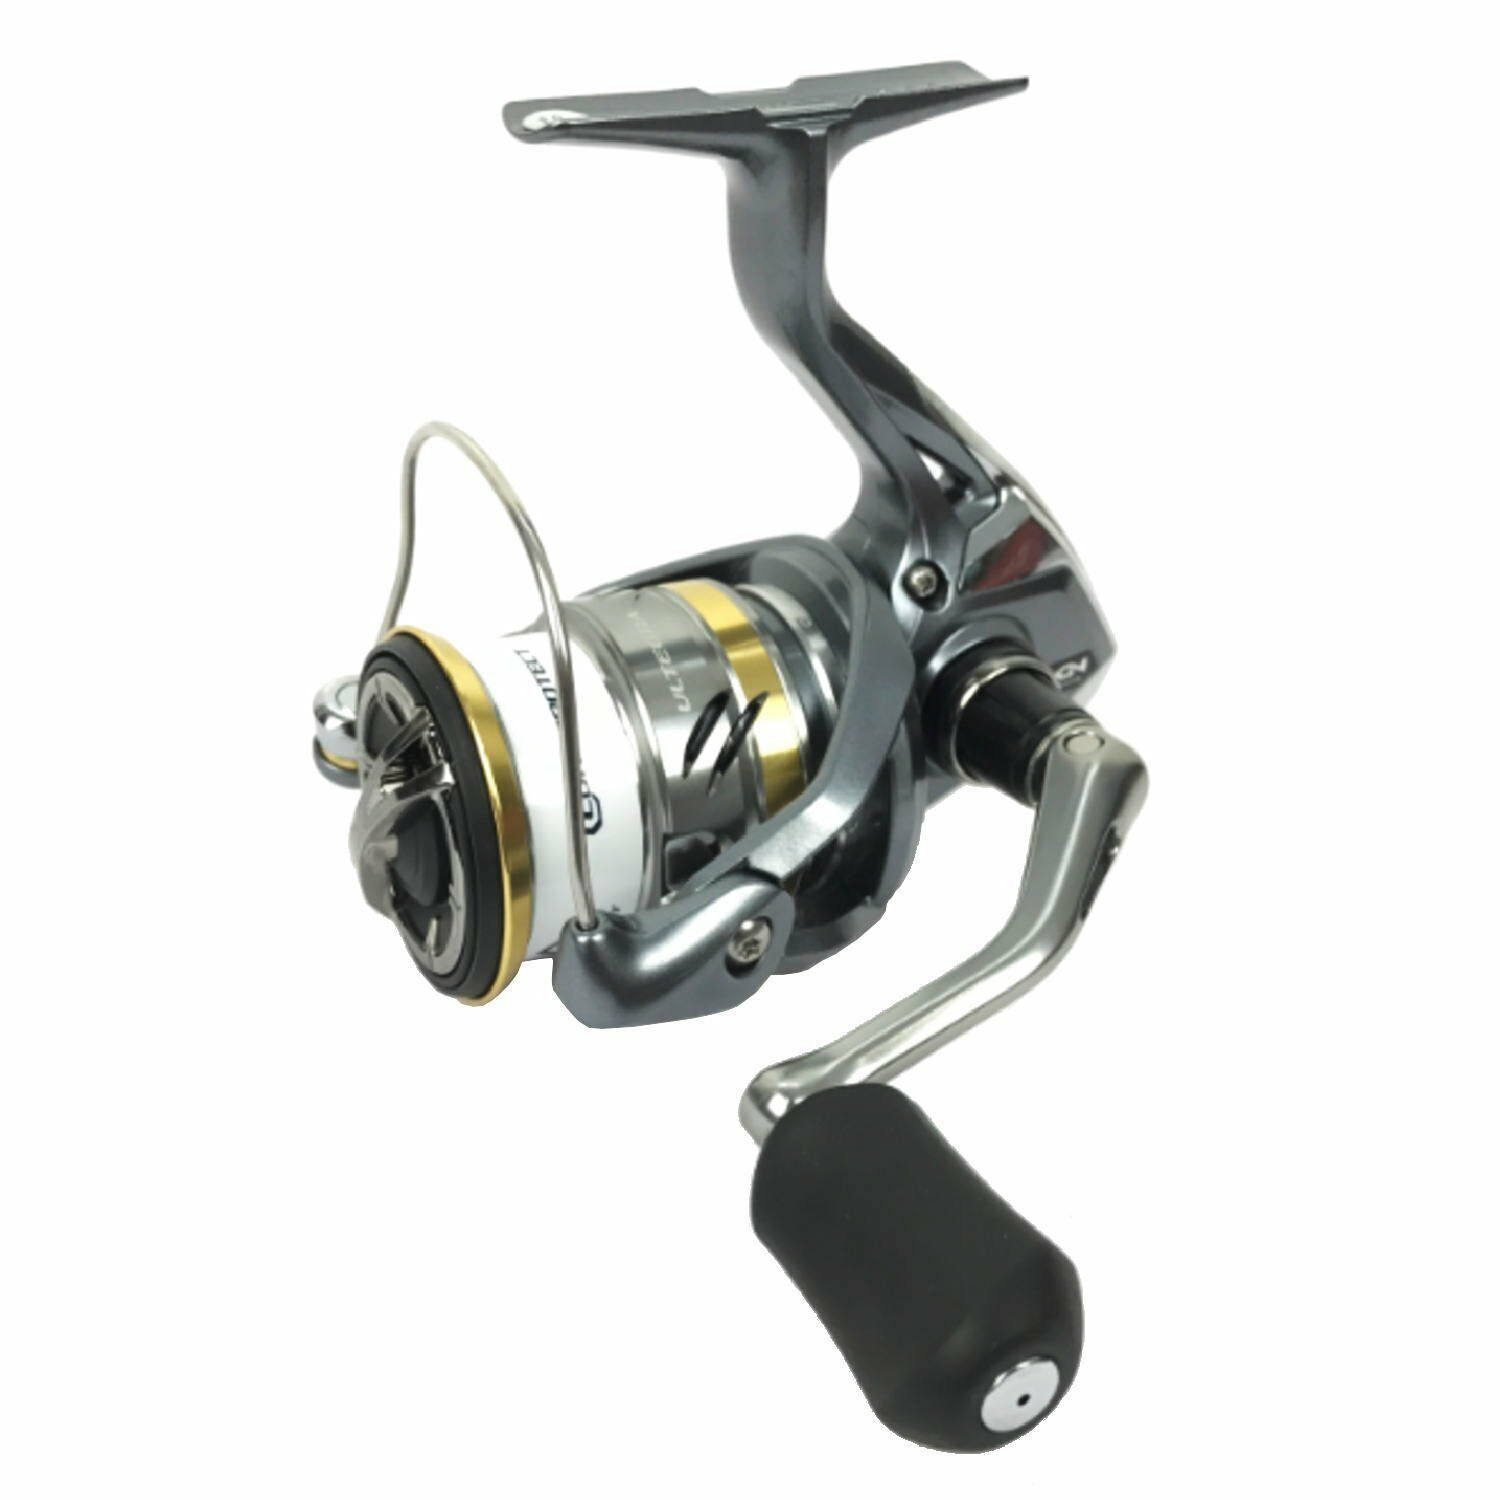 SHIMANO  17 UXEGRA 2500HGS Spinning Rulles